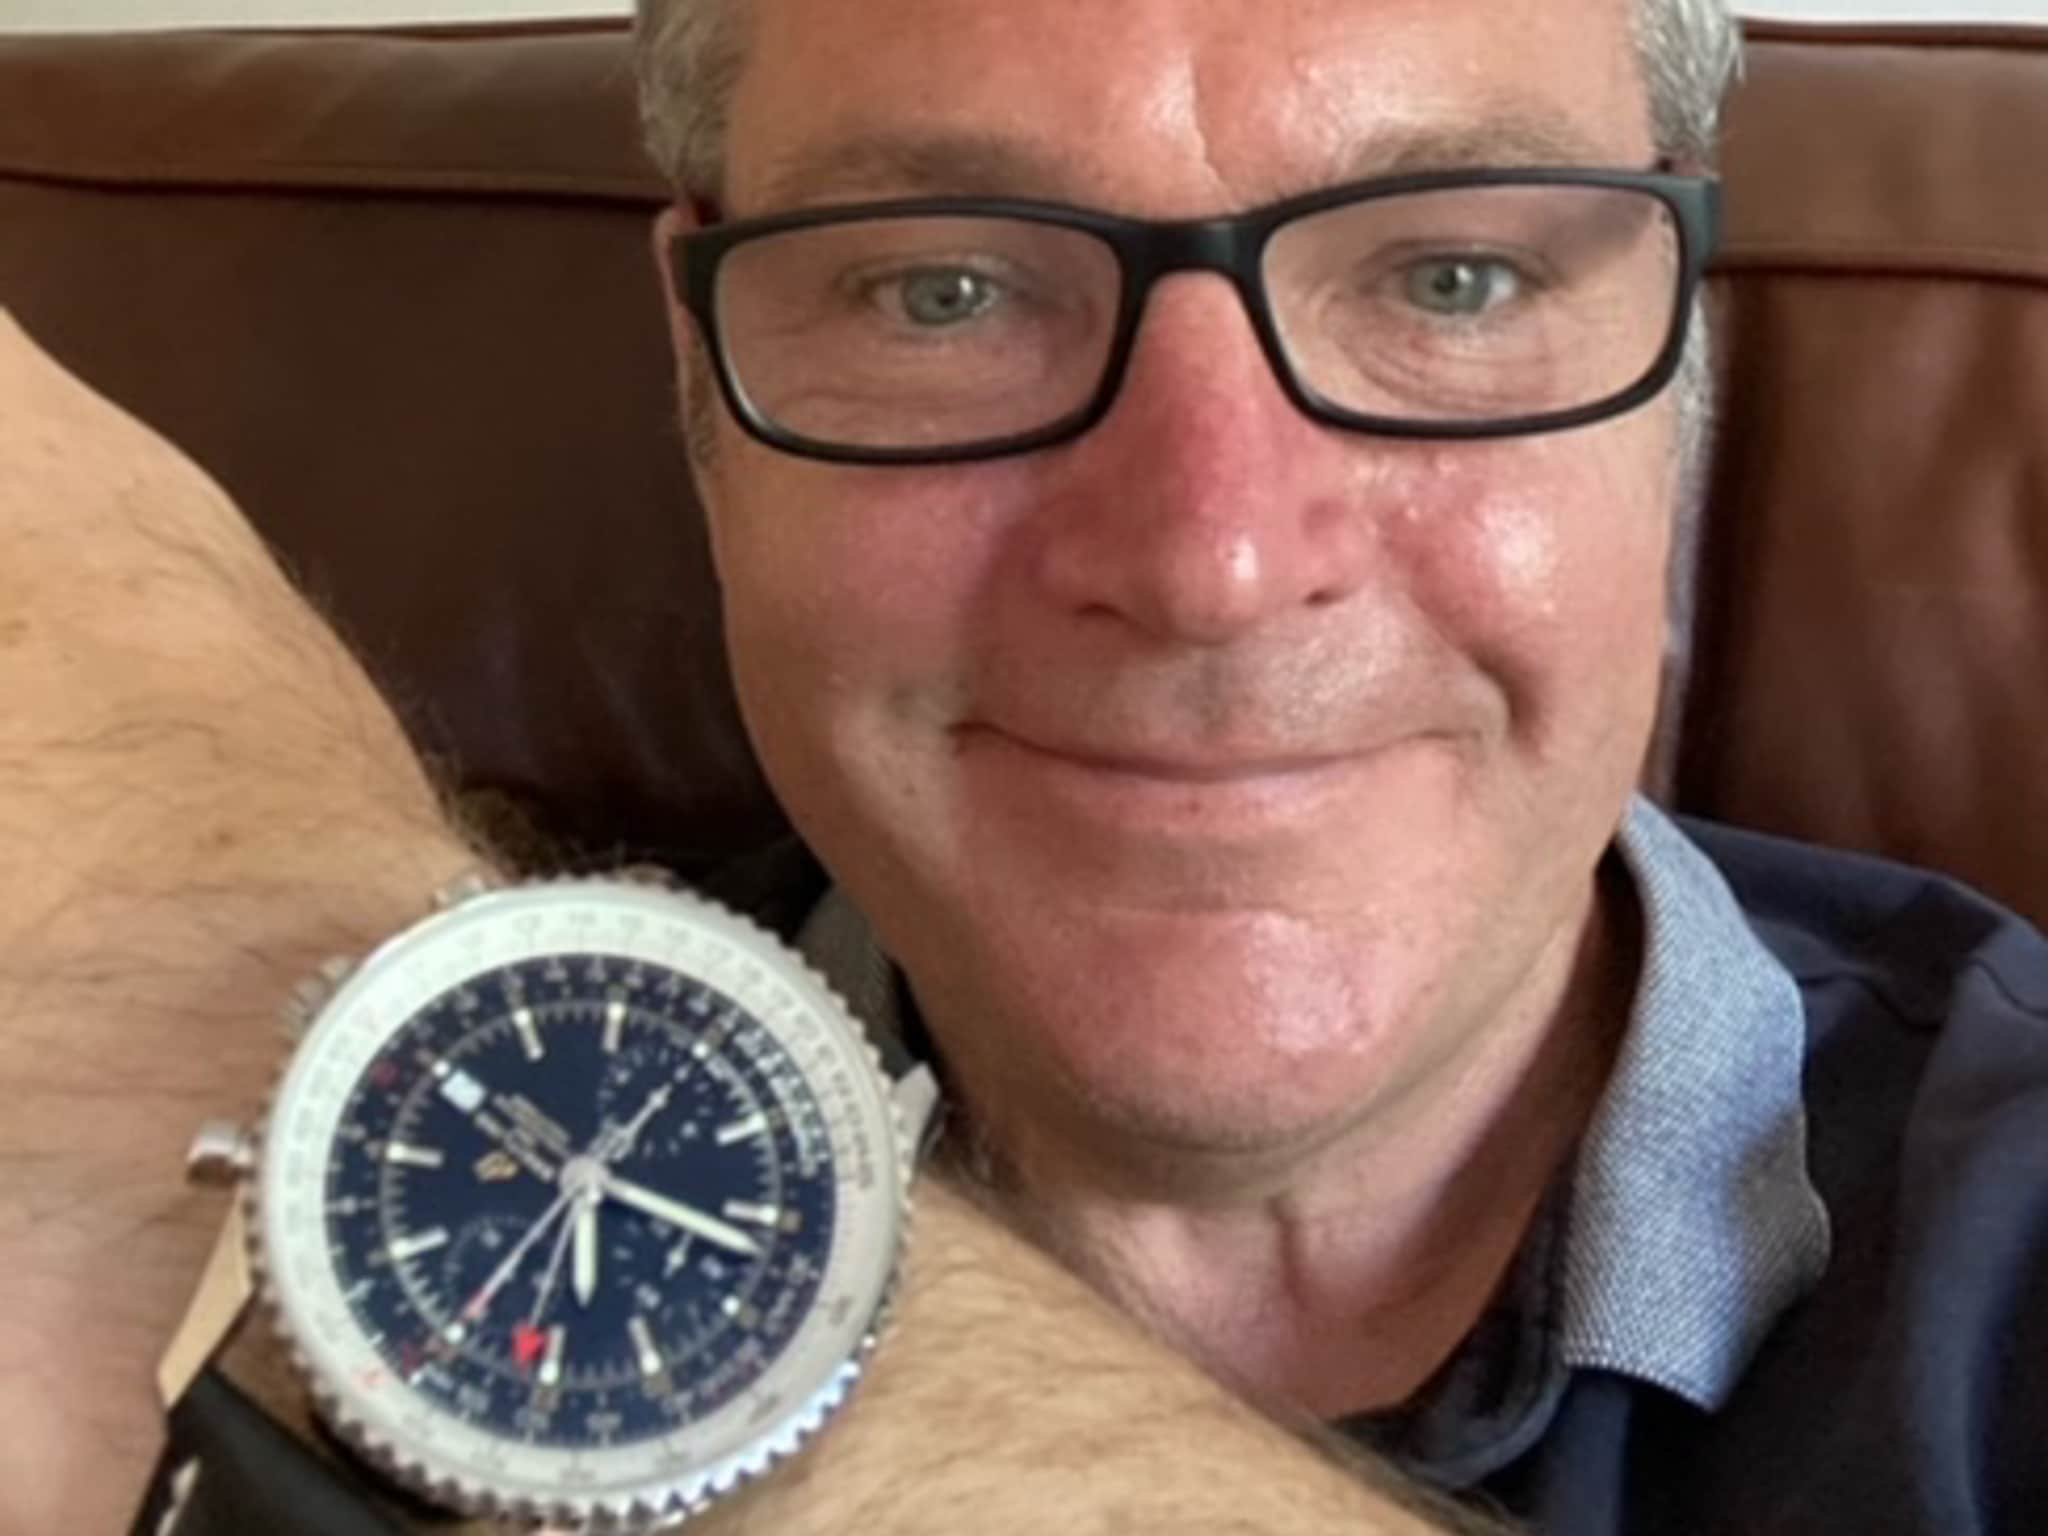 Winner David Castle of a Breitling Navitimer World 46 Automatic Chronograph Men's Watch - 5th July